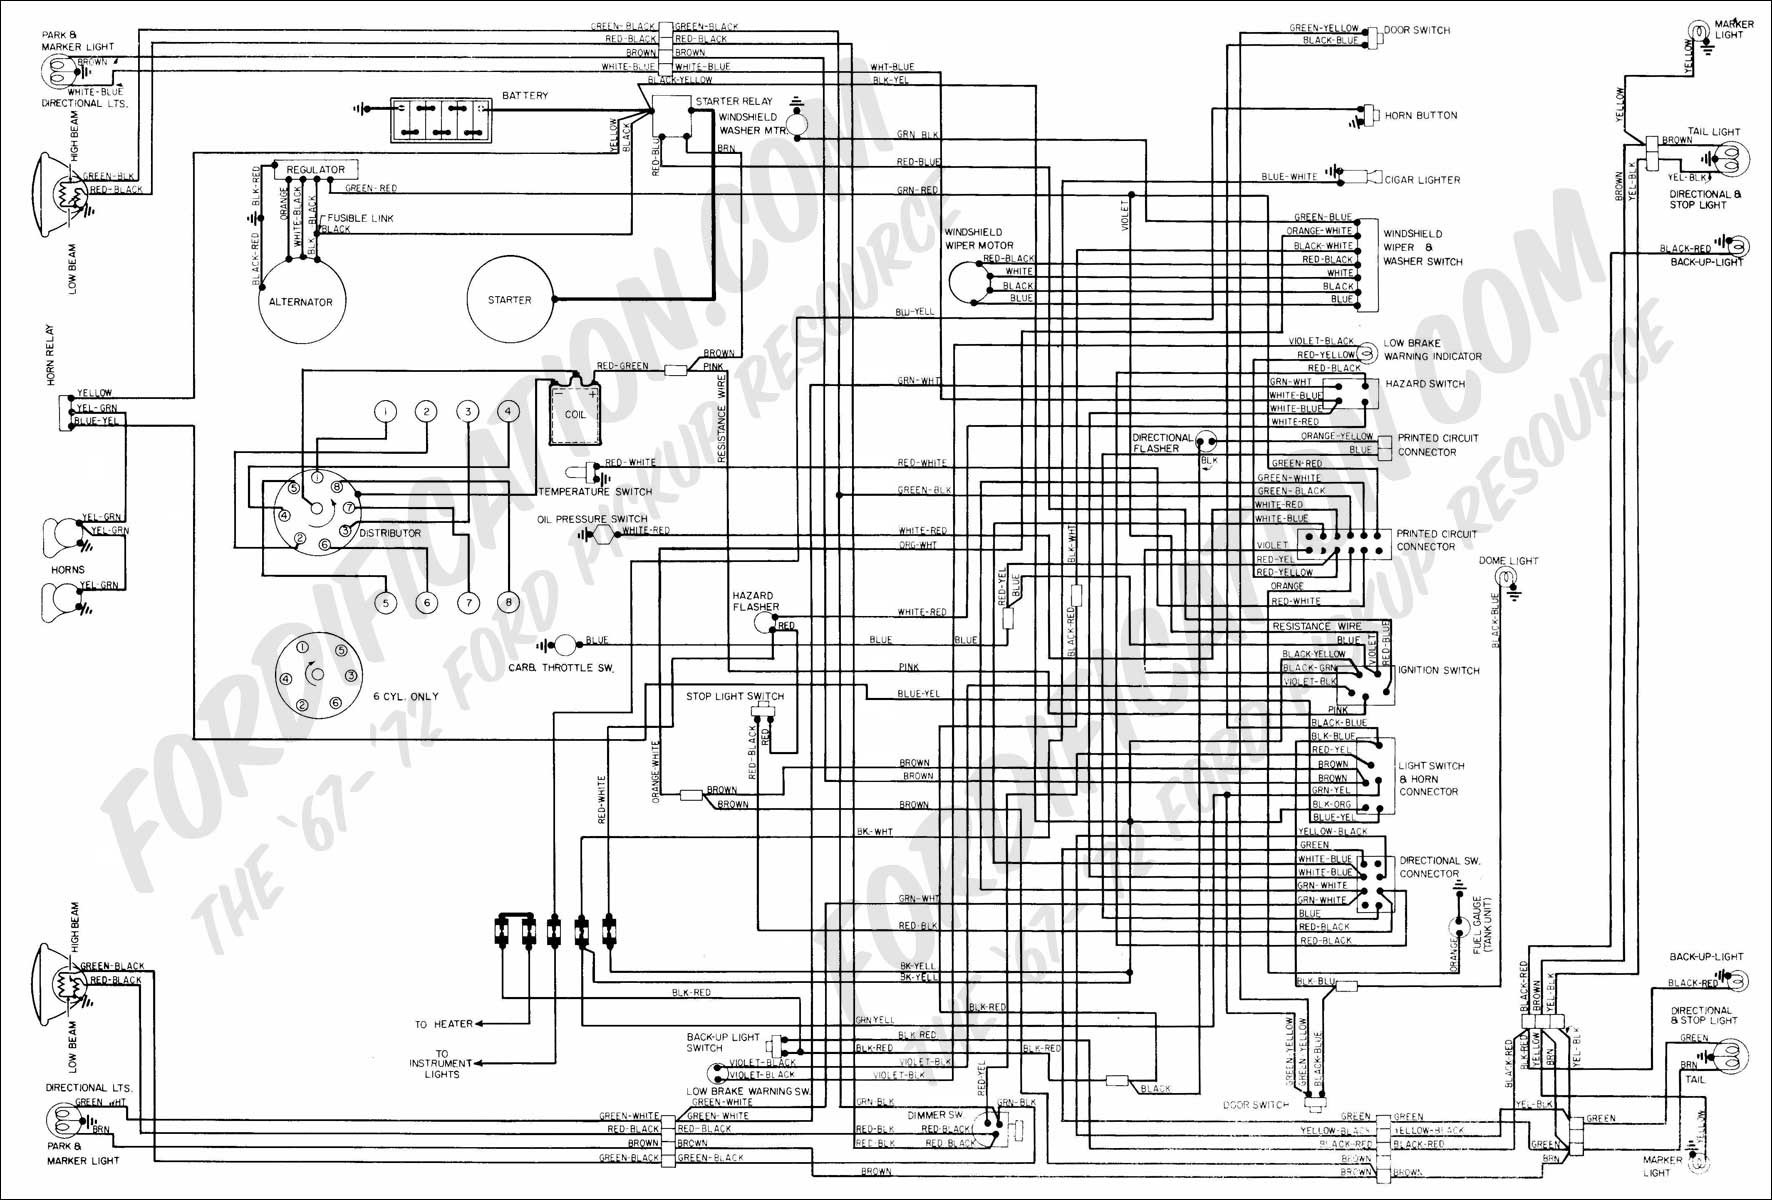 2002 ford Explorer Engine Diagram 4 0 ford F350 Wiring